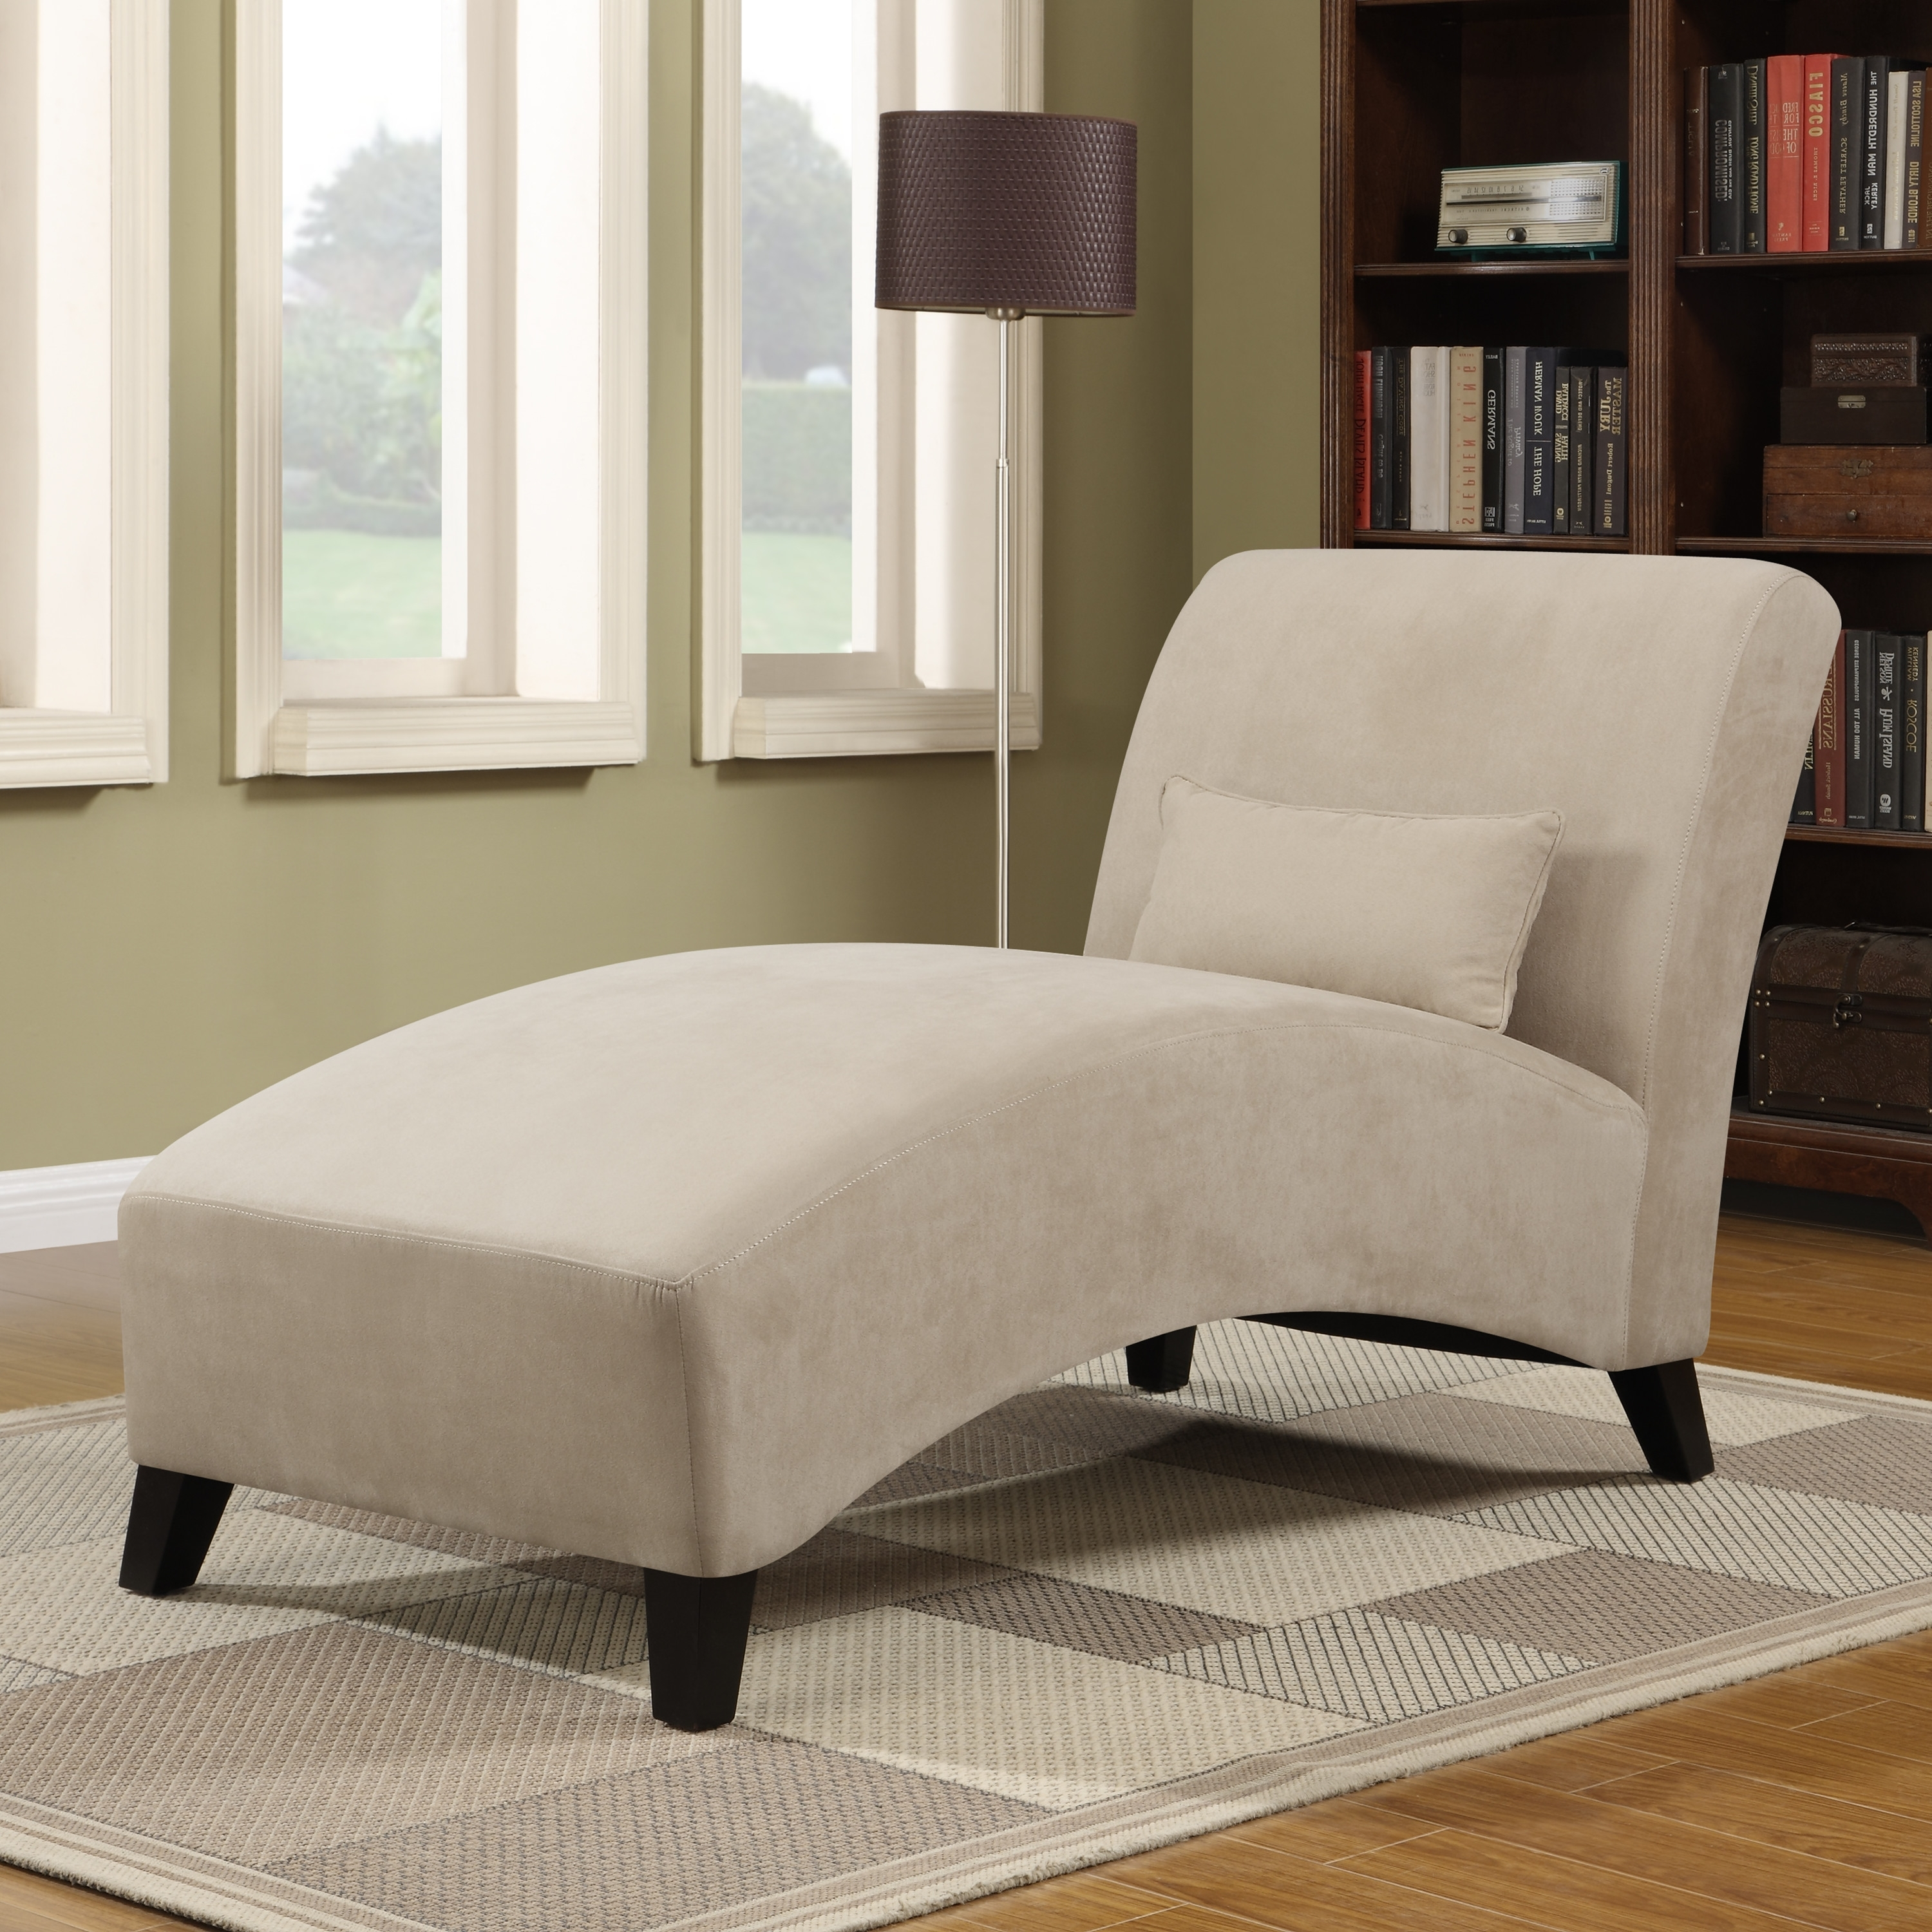 Widely Used Furniture: Microfiber Chaise Lounge For Comfortable Sofa Design With Comfy Chaise Lounges (View 14 of 15)